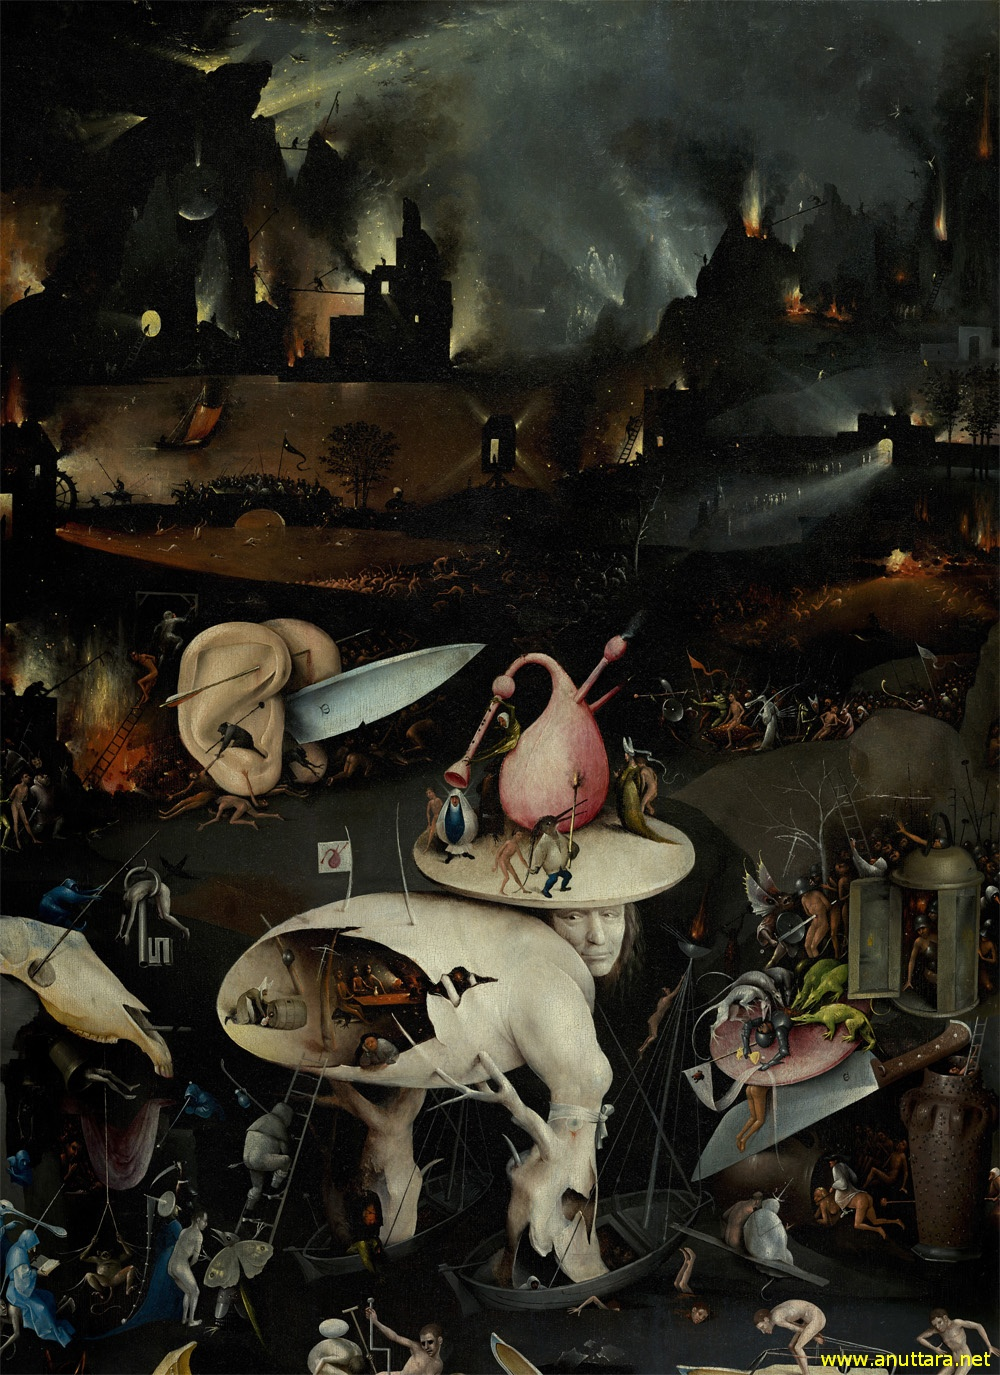 The Garden of Earthly Delights by Hieronymous Bosch